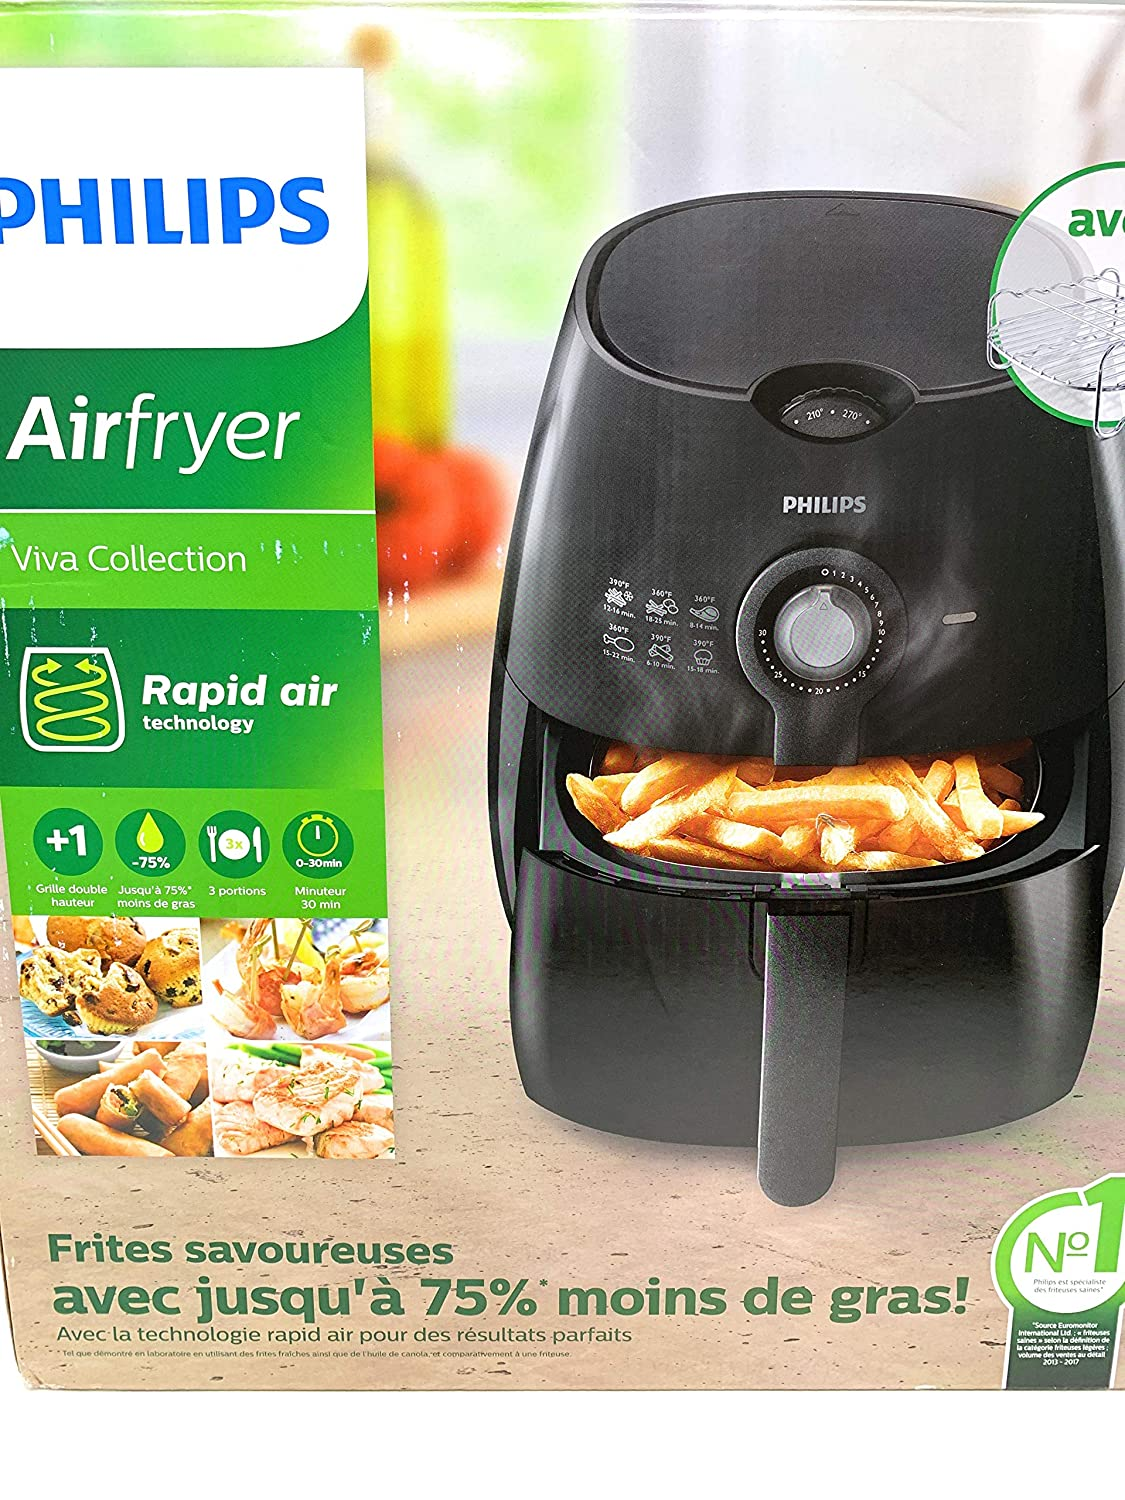 Philips HD9226 23 Viva Airfryer 1.8lb 2.75qt Black Fryer with Double Layer Rack